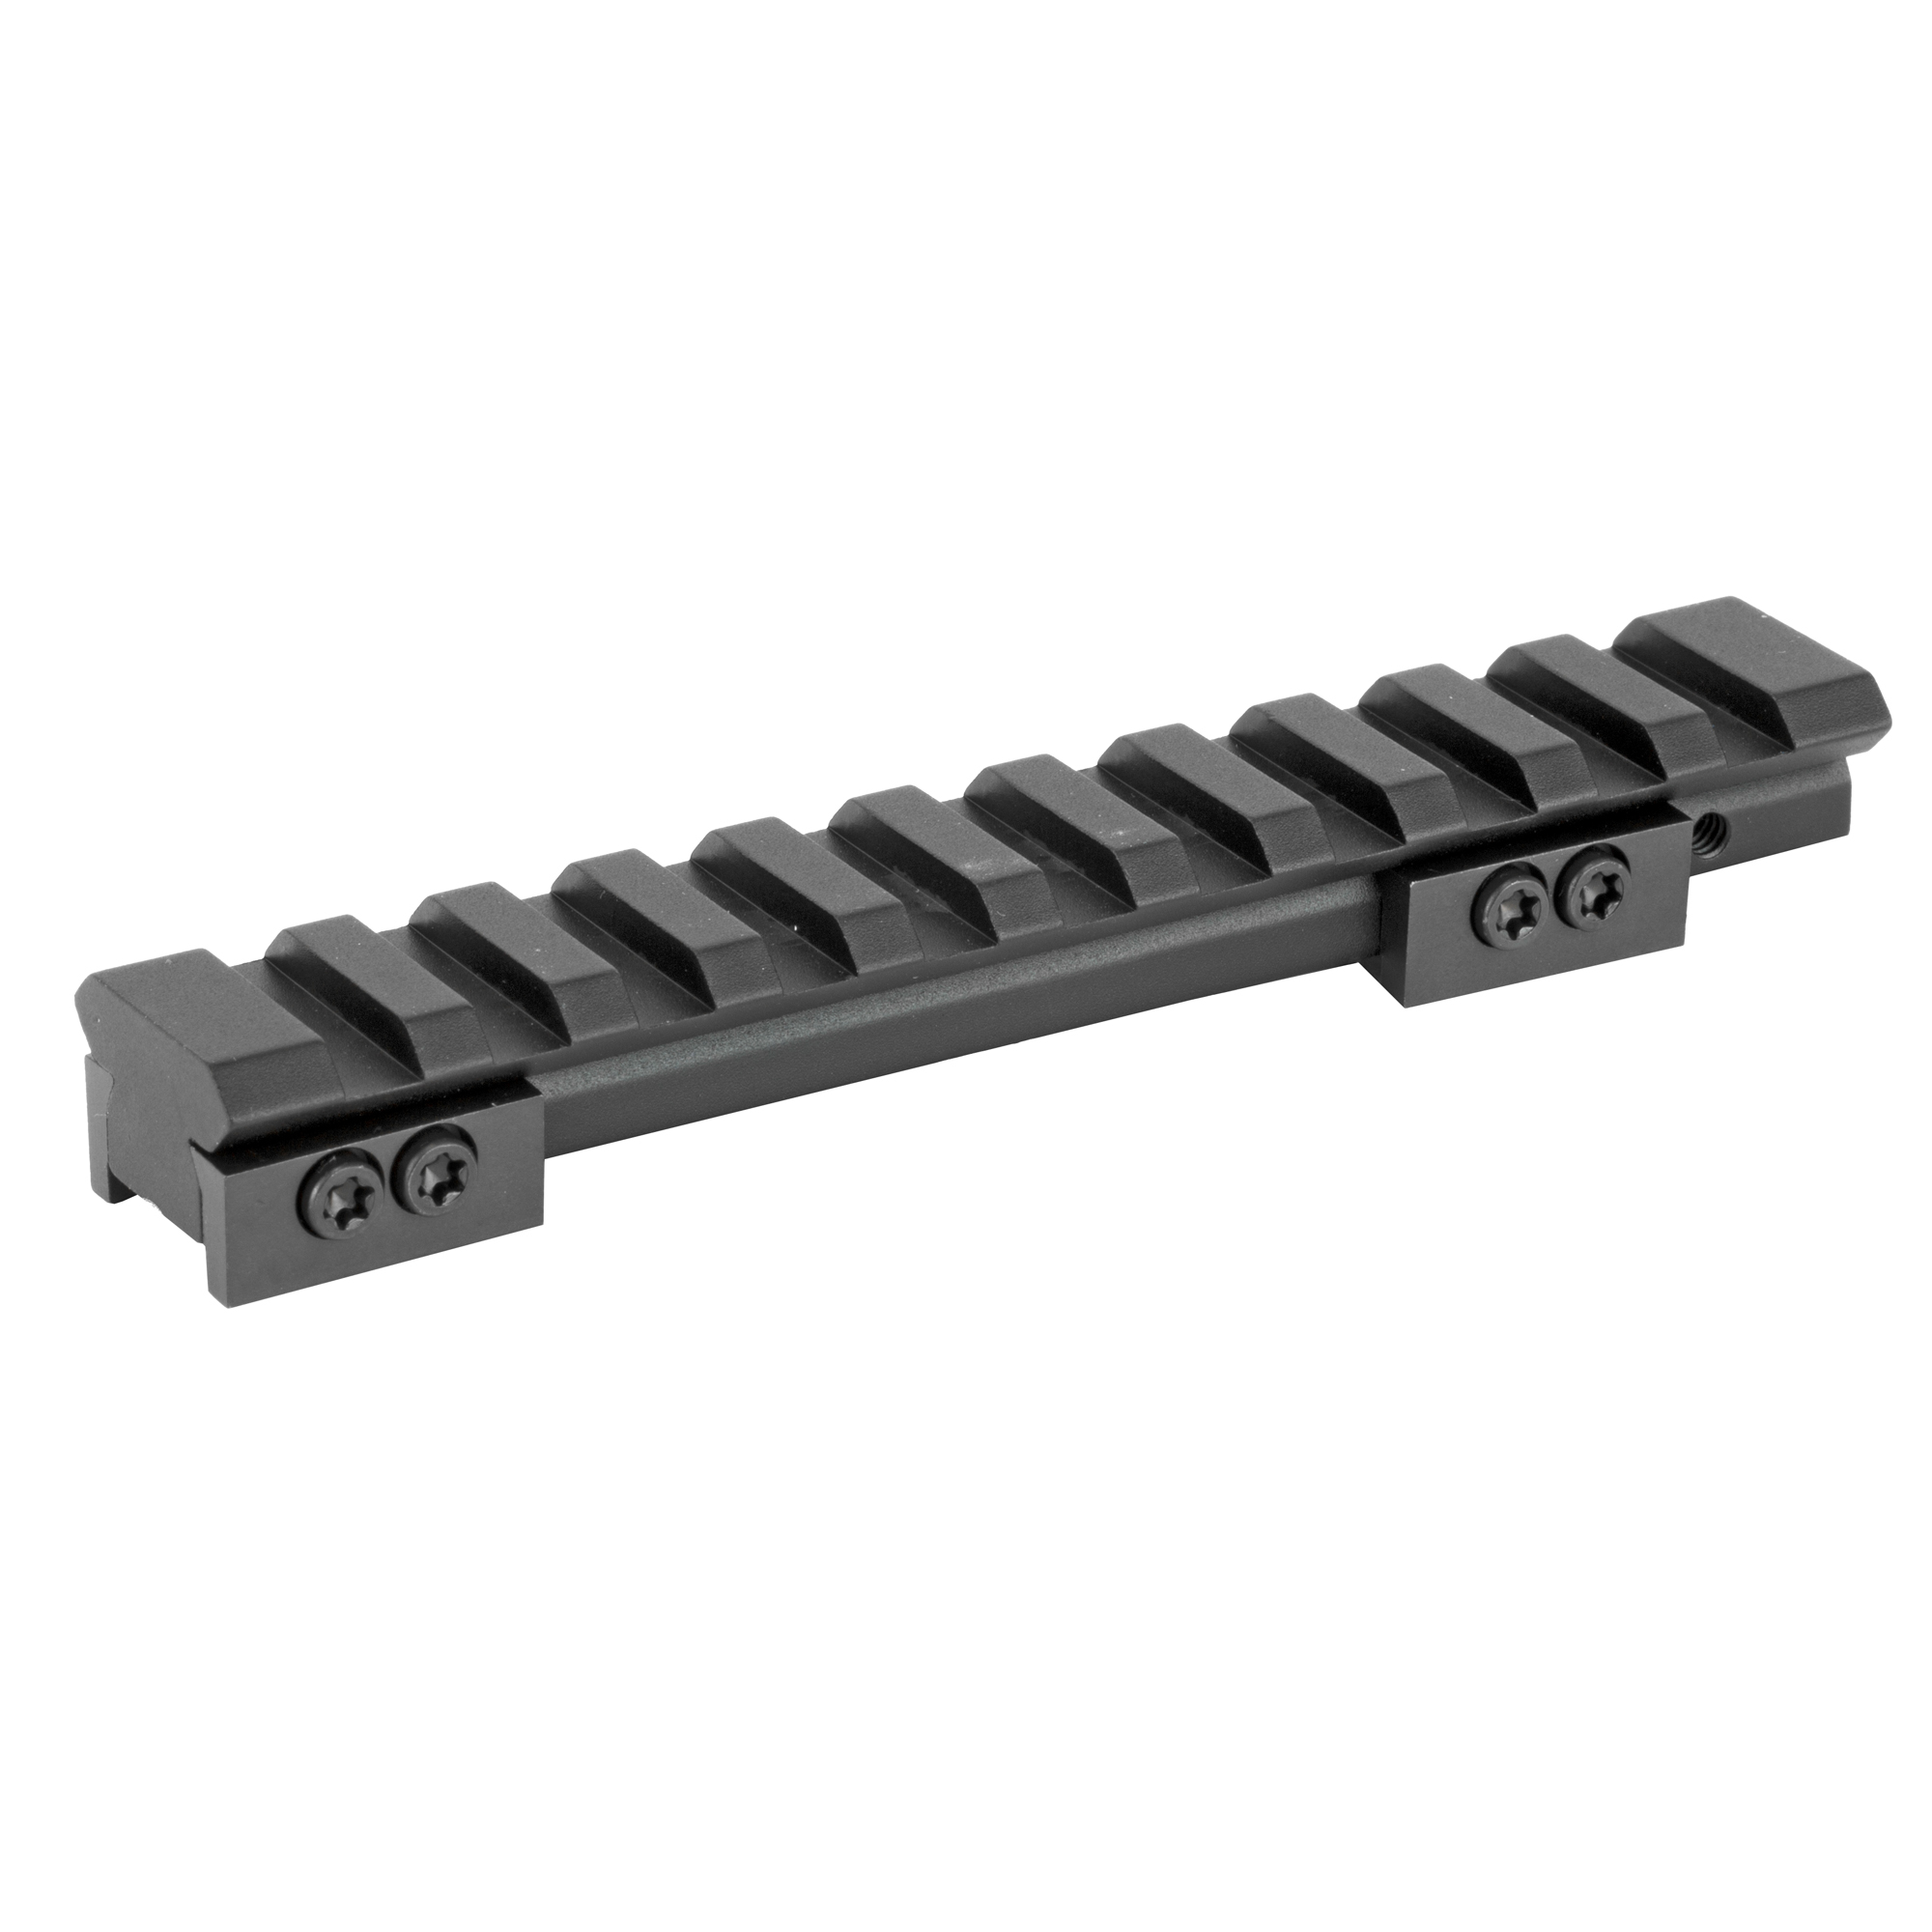 """Designed for the Ruger Mini 14 & 30 models and can be adapted to fit the Ruger 77/44"""" PC-9 and PC-40. This base attaches to the Ruger integral dovetail to convert the mount style to a Mil-Spec 1913 Picatinny rail design. With 1913 rail Mil-Spec"""" multiple-sight systems such as; red dot"""" holographic"""" reflex"""" and standard magnified optical sighting is available to the shooter. Compatible with Warne Maxima Rings."""